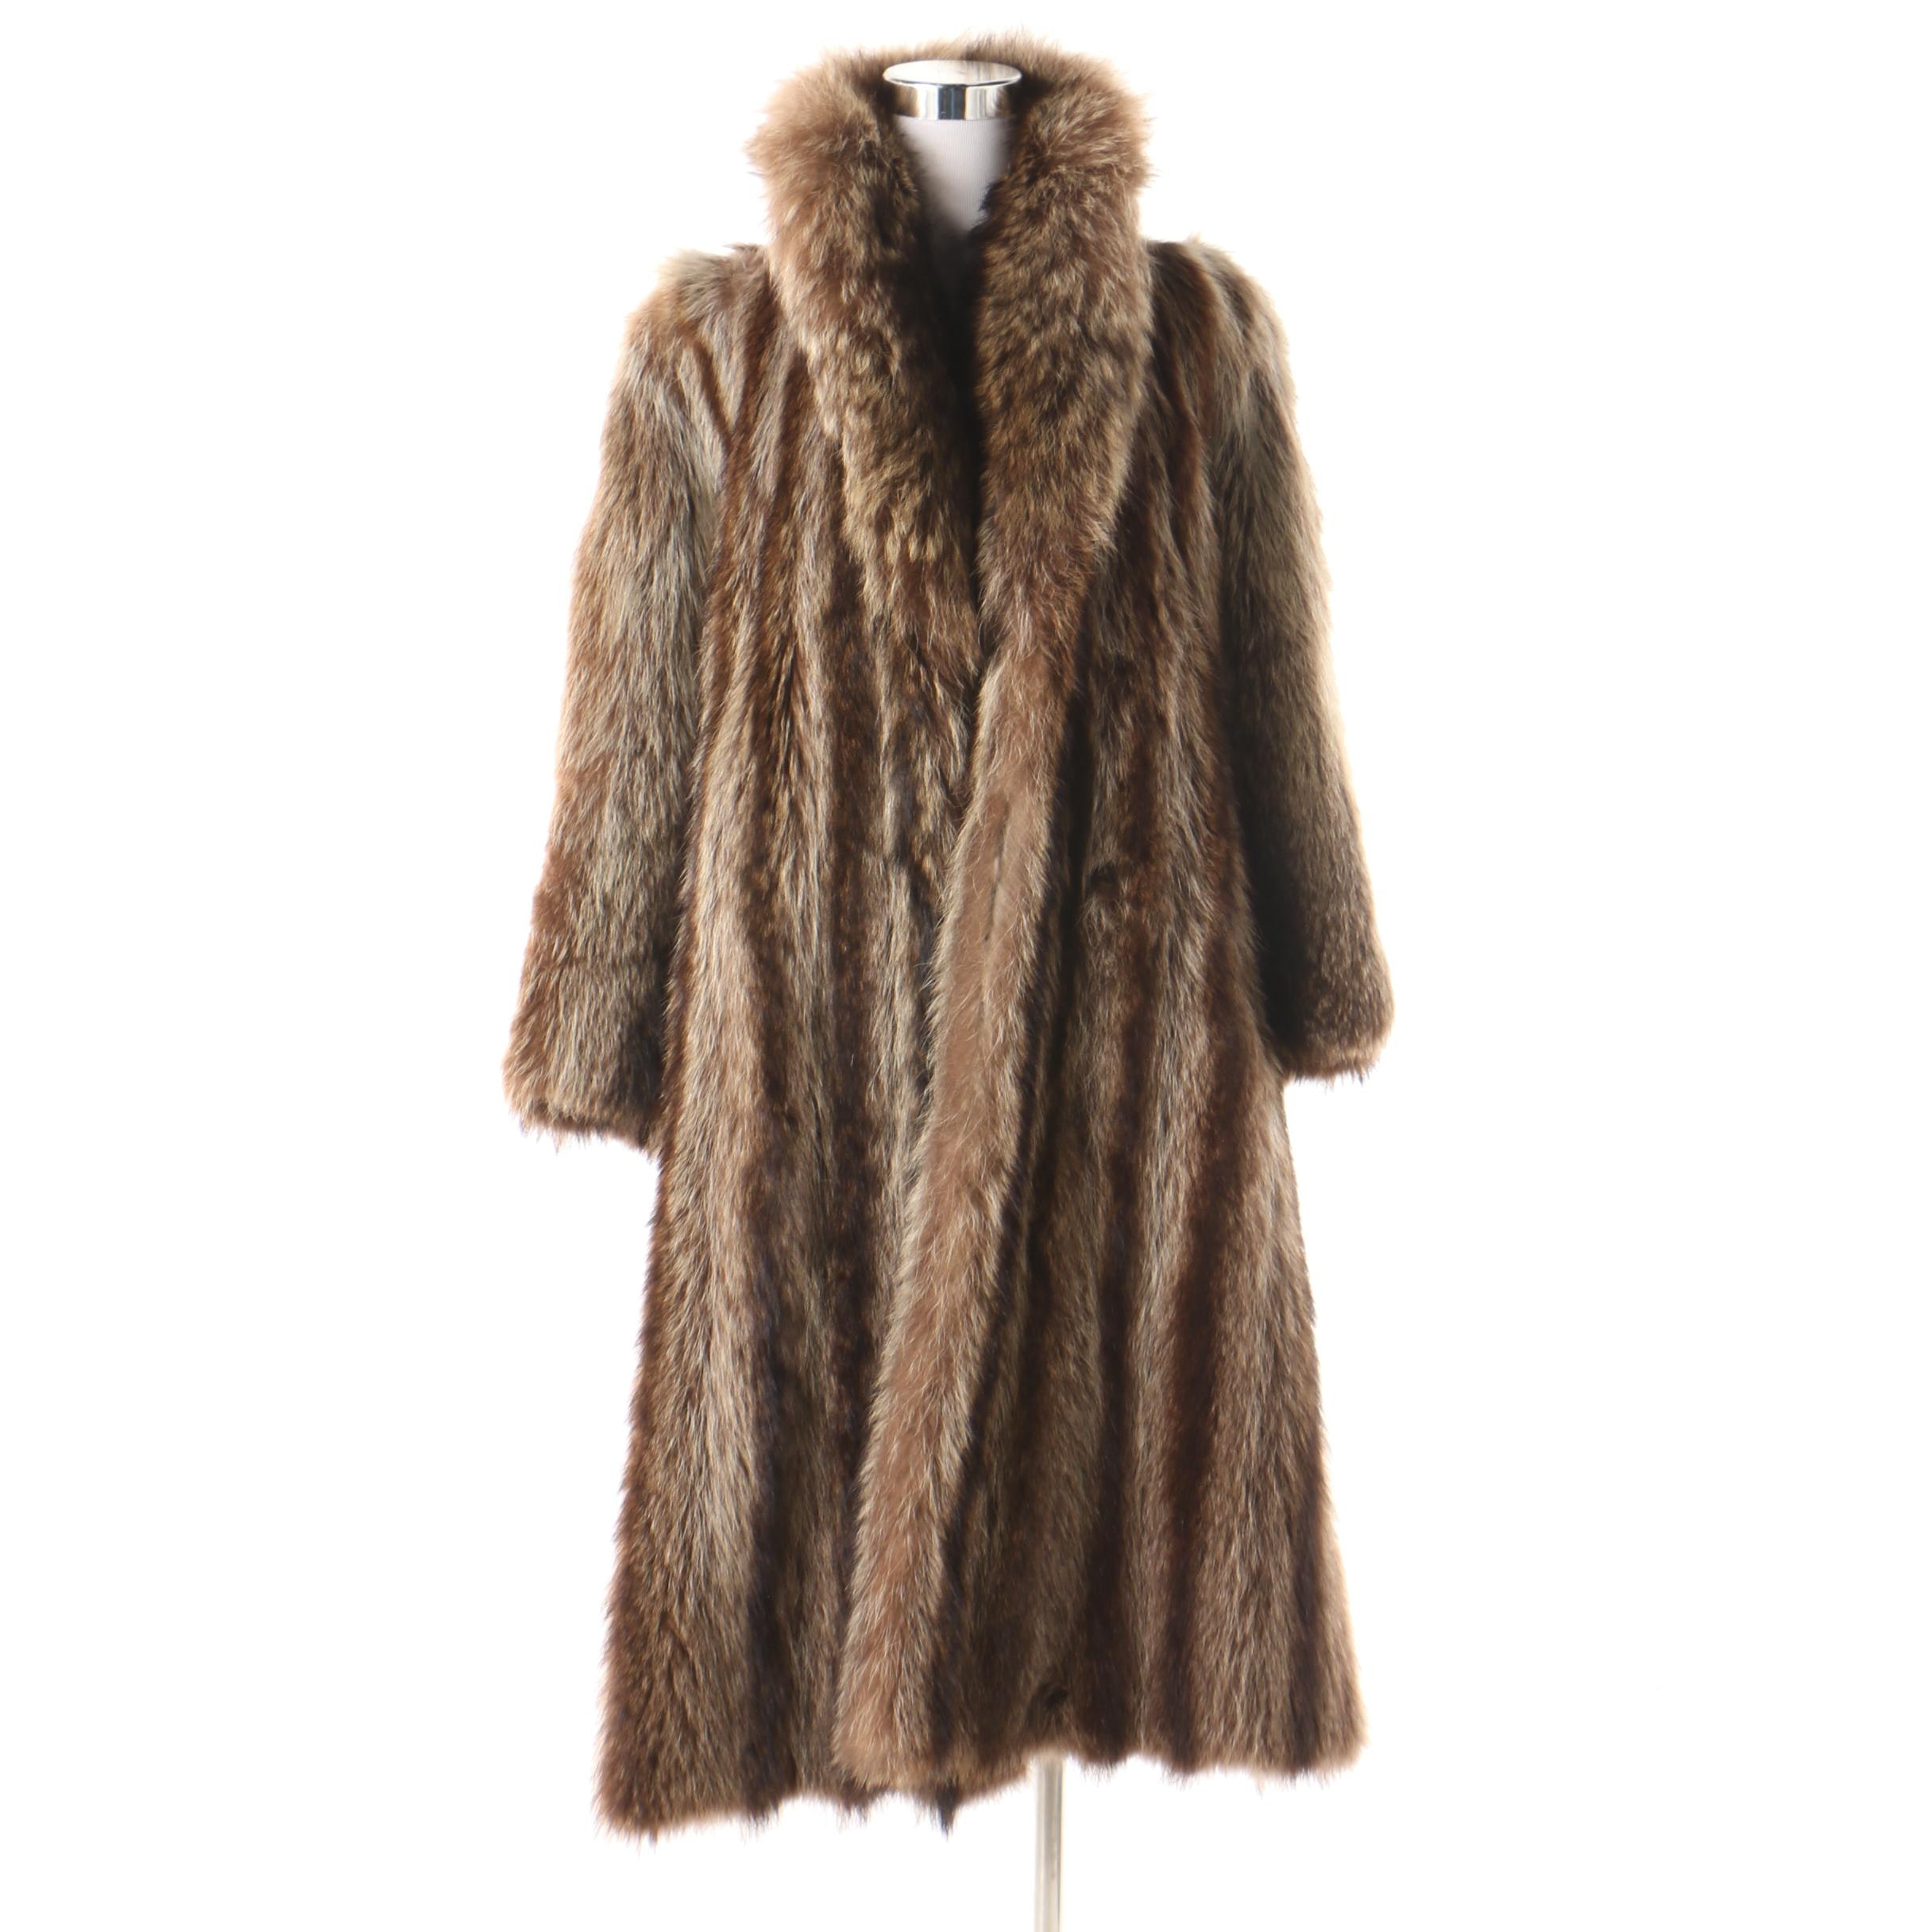 Women's Vintage Raccoon Fur Coat